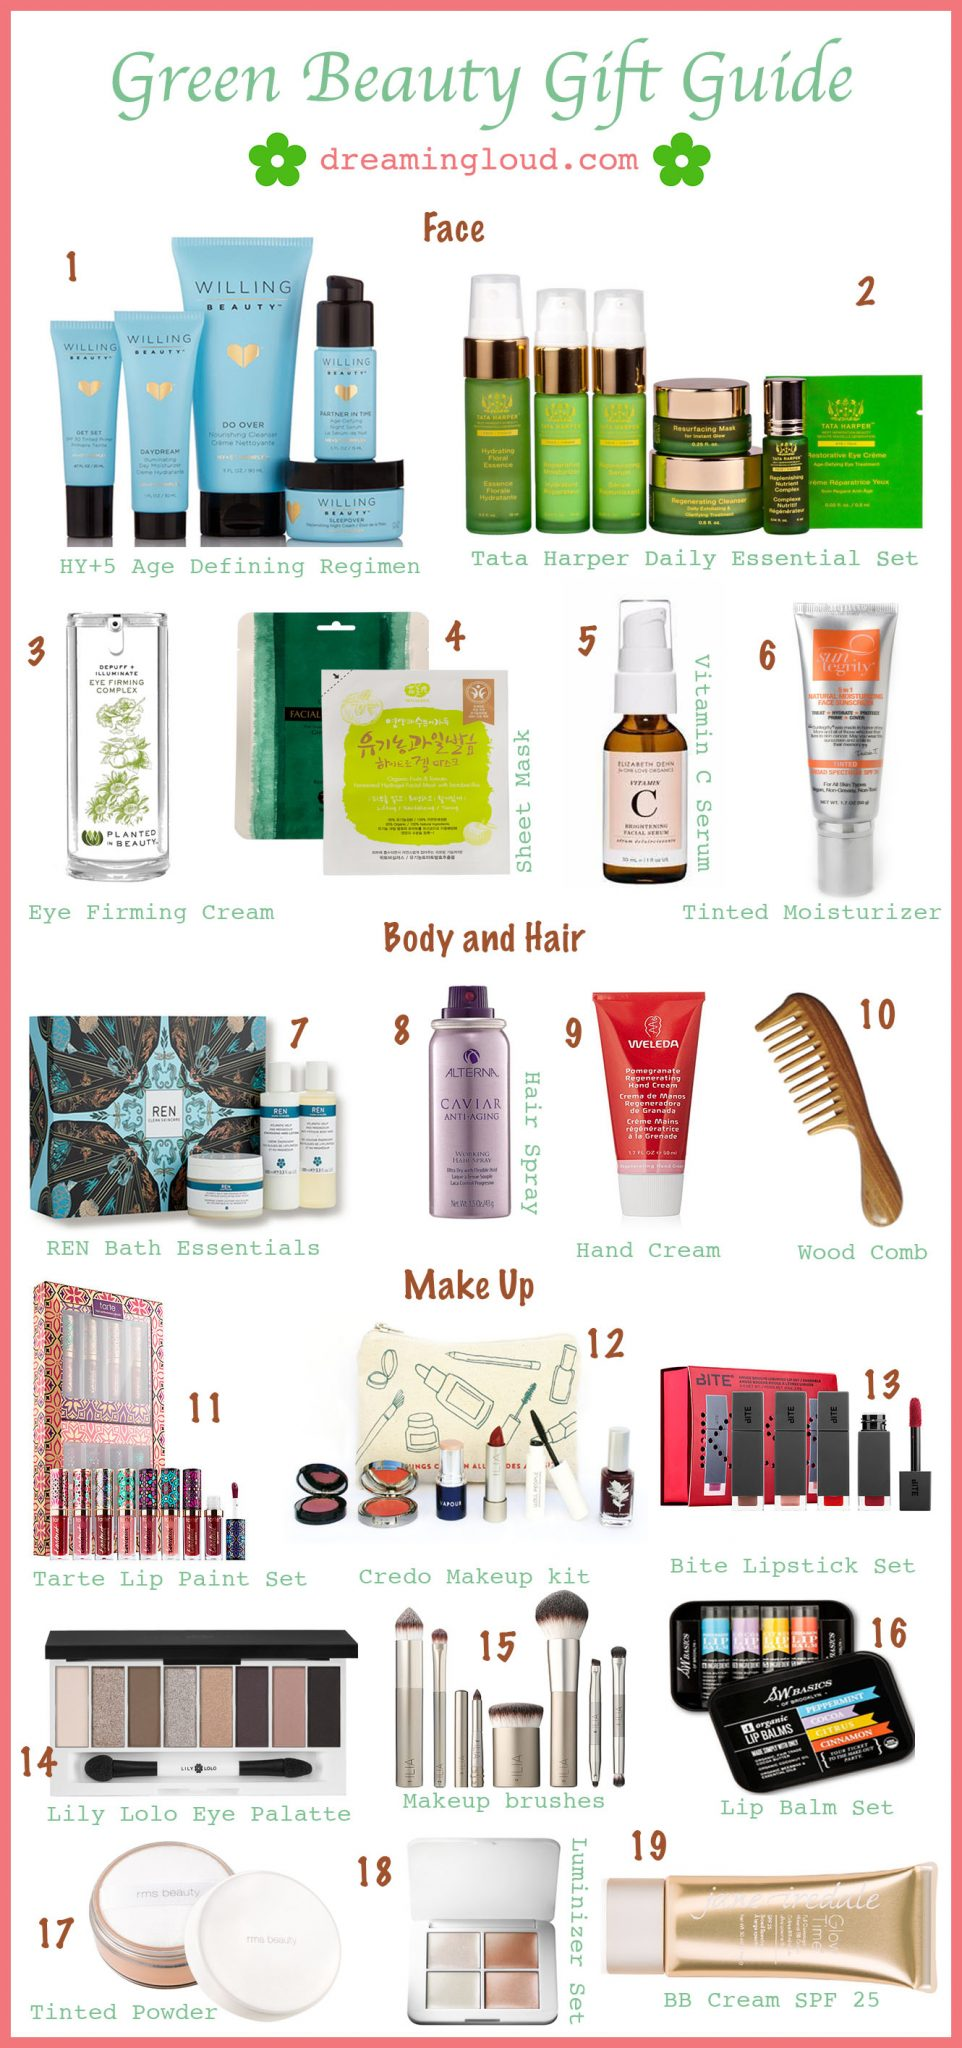 Lifestyle Blog Dreaming Loud Sharing Natural or green beauty gift guide 2017